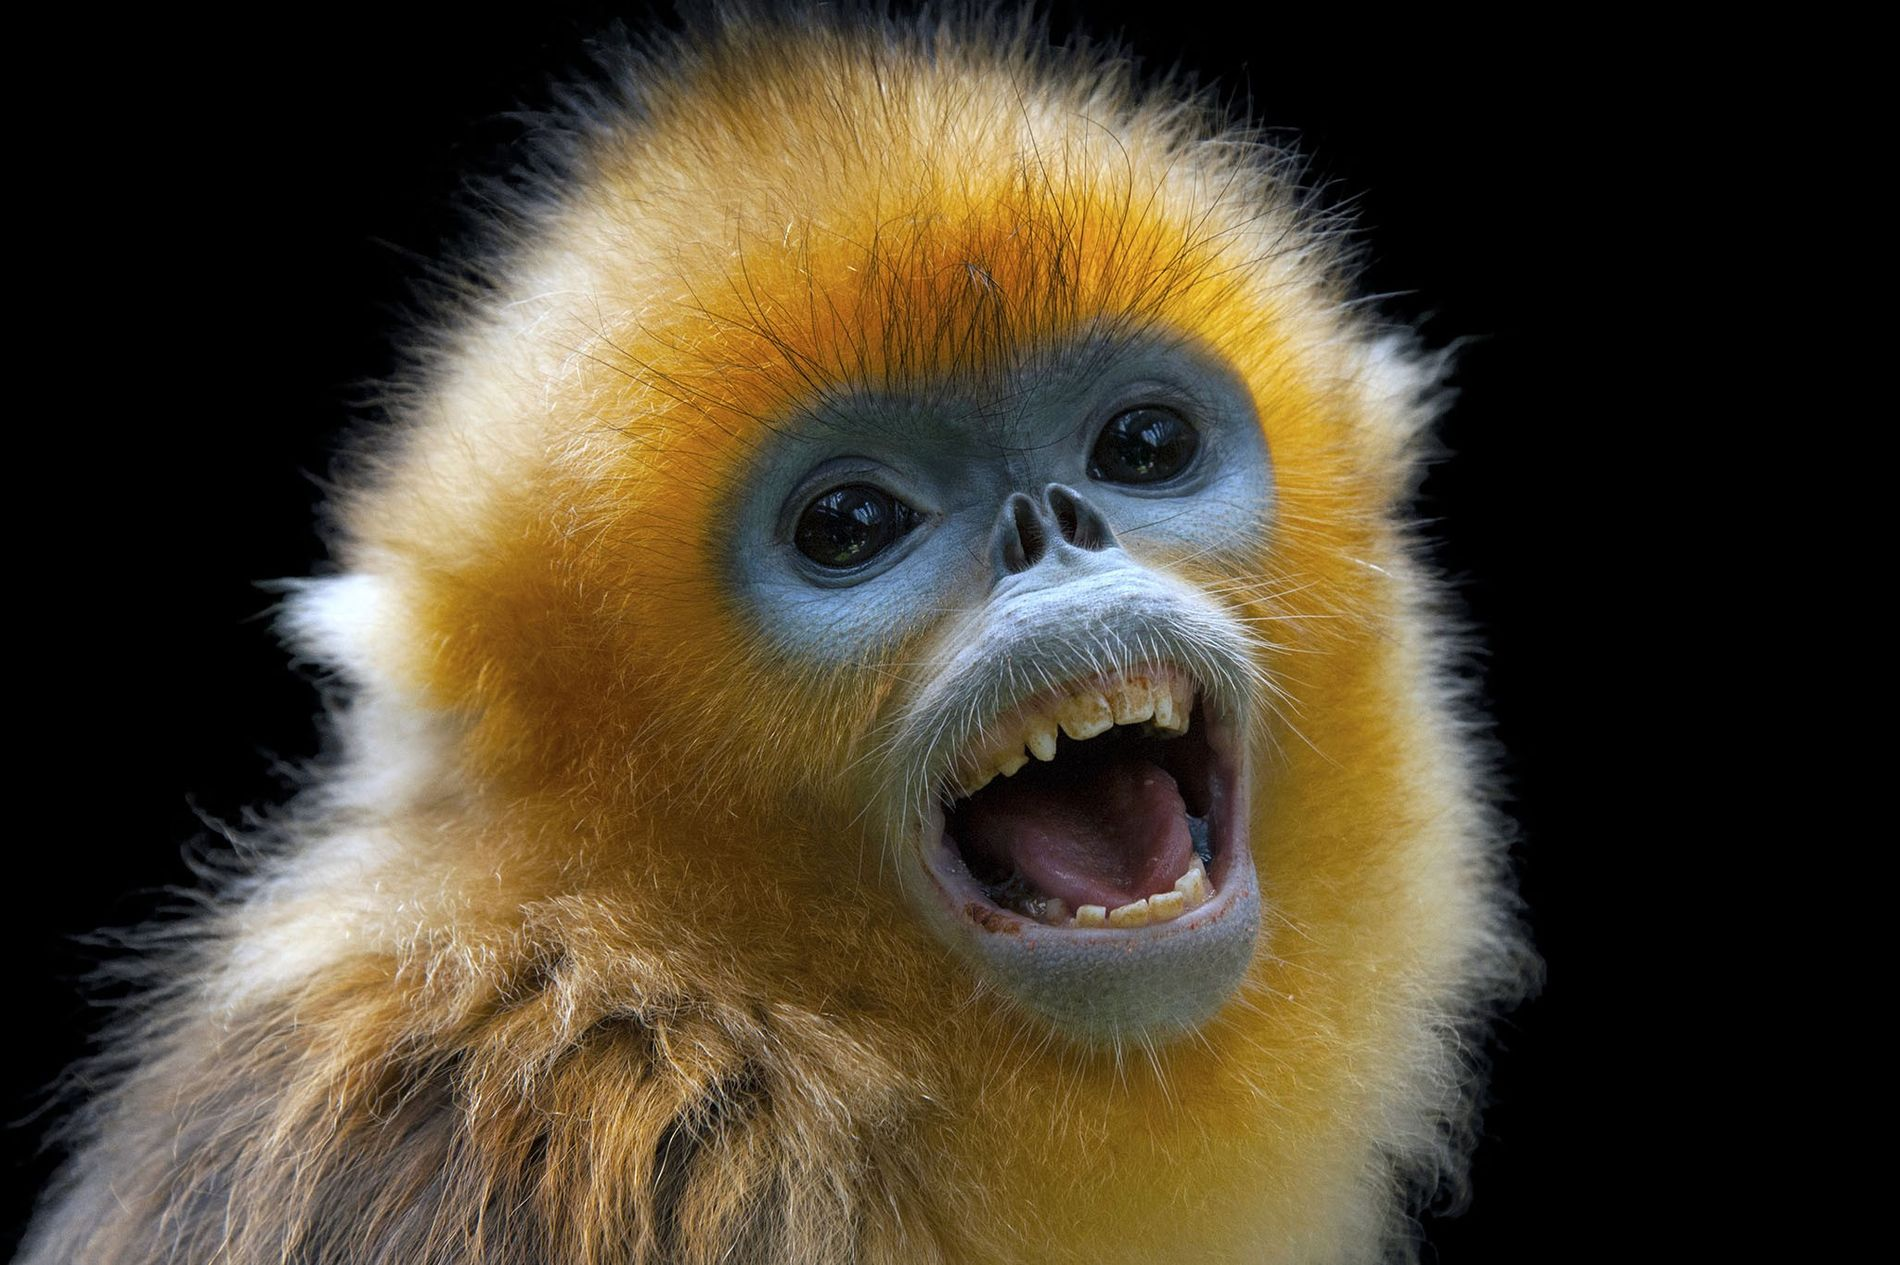 Ancient Chronicles Show Modern Demise of Snub-Nosed Monkeys | National Geographic